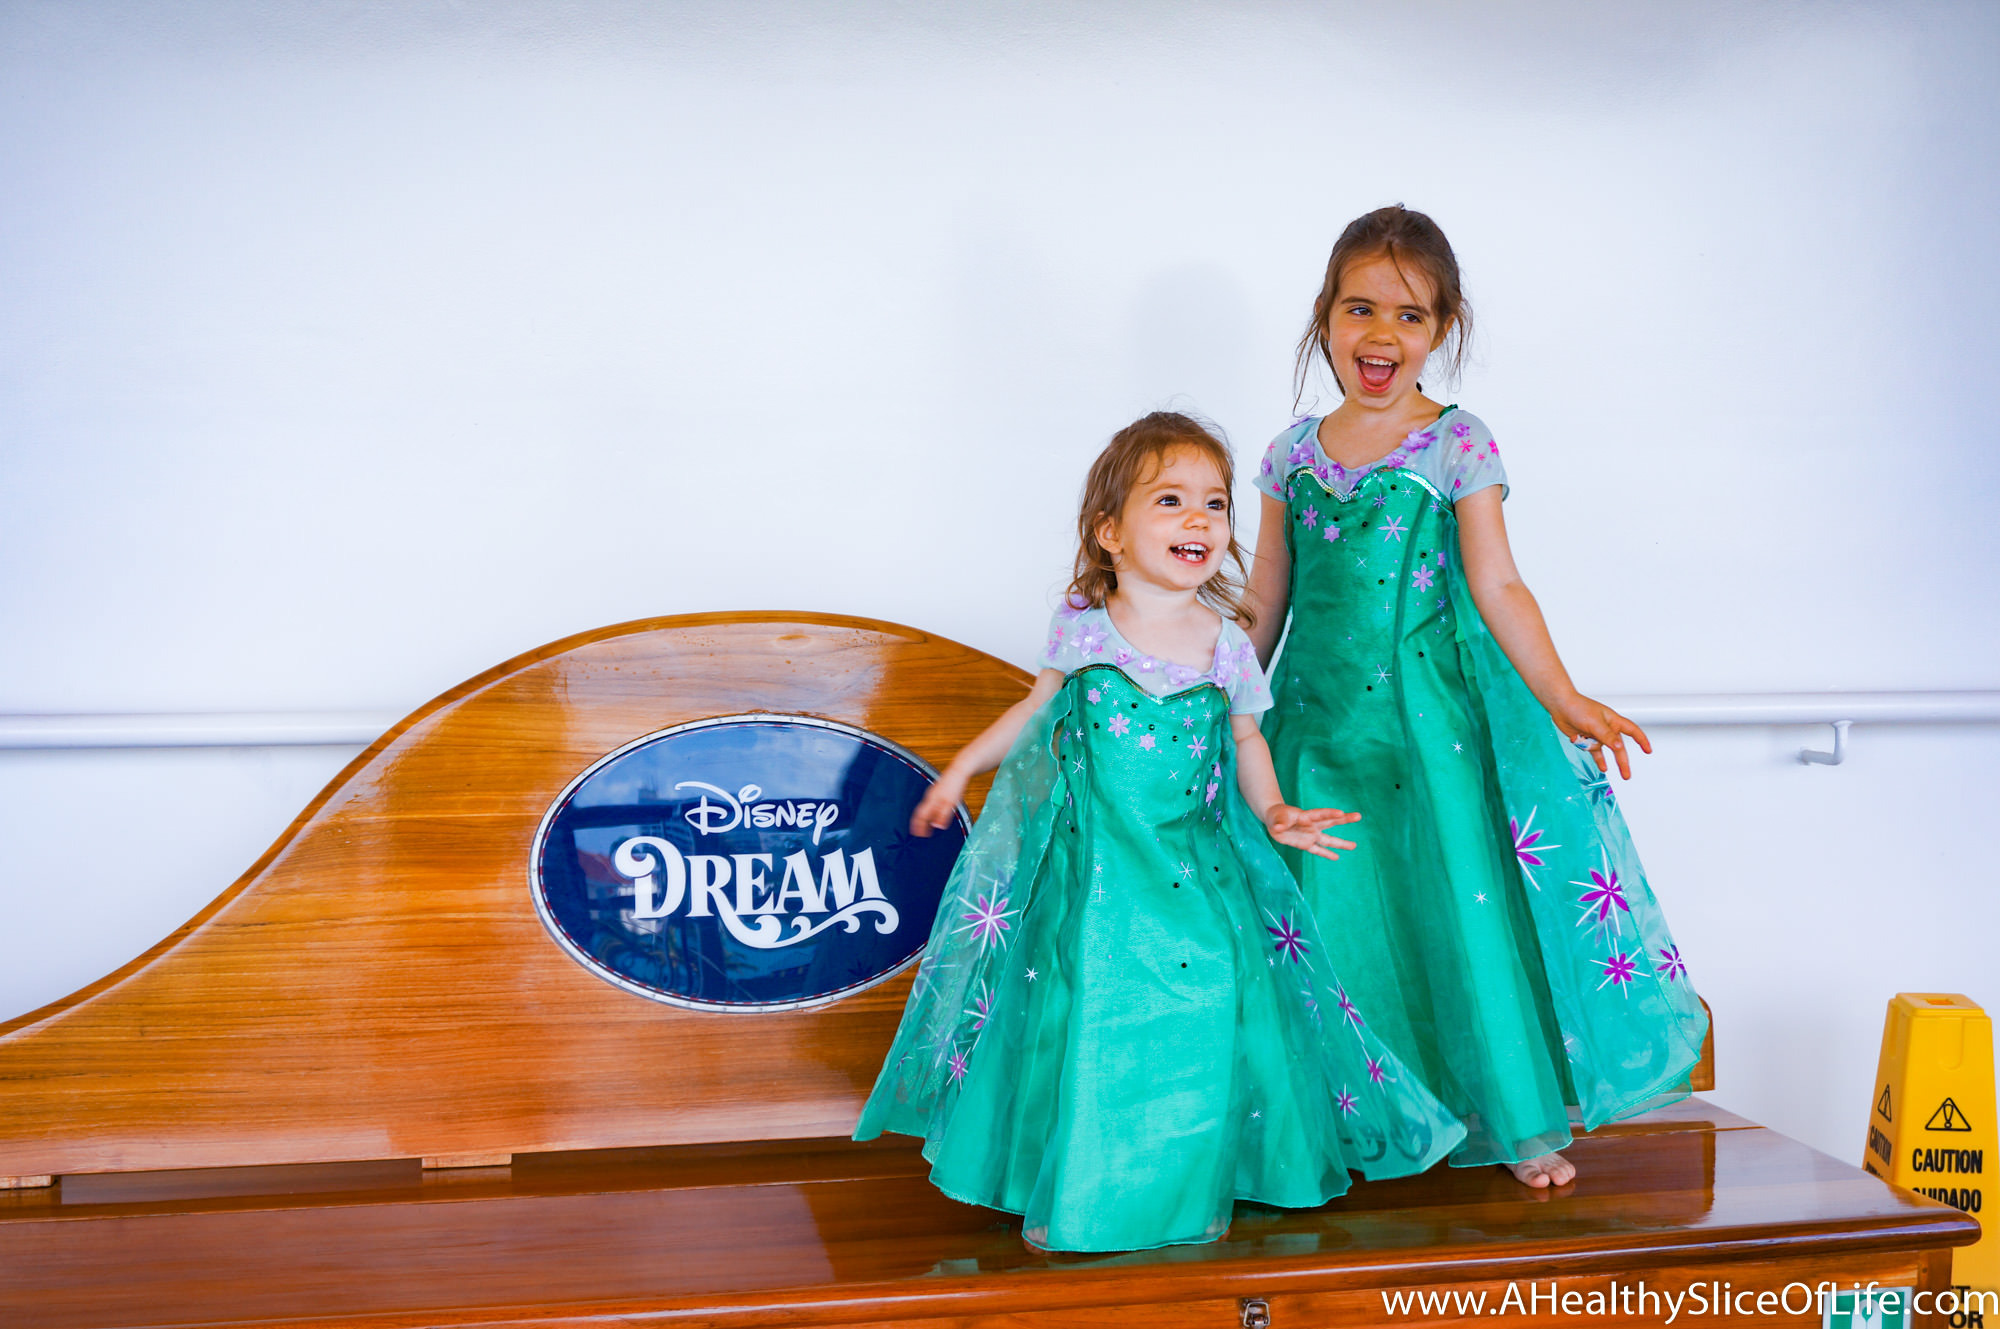 Disney Cruise with Toddlers: What You Need to Know